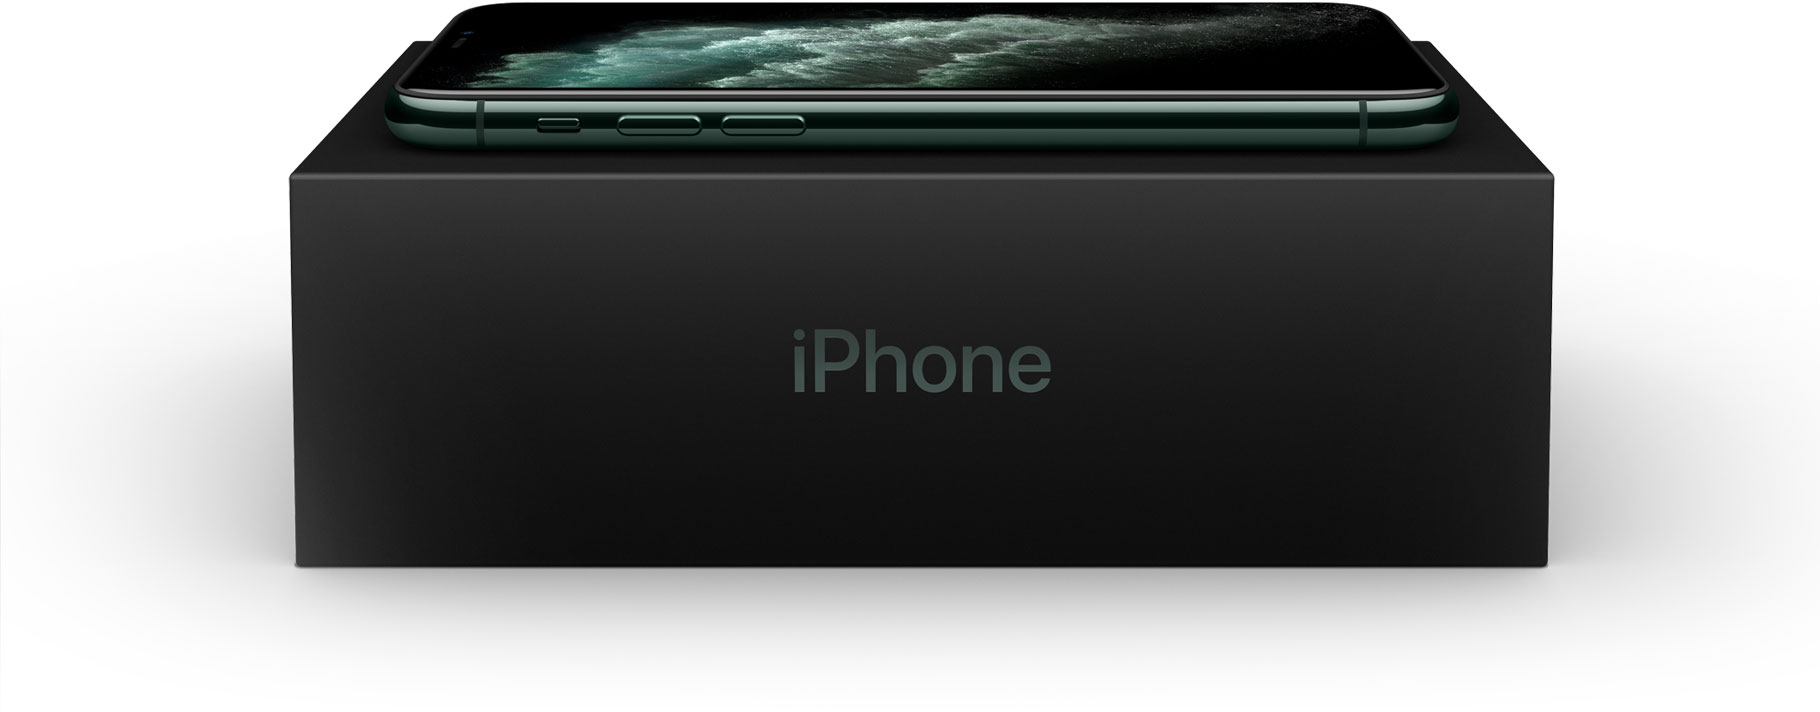 iPhone 11 Pro placed on top of its packaging